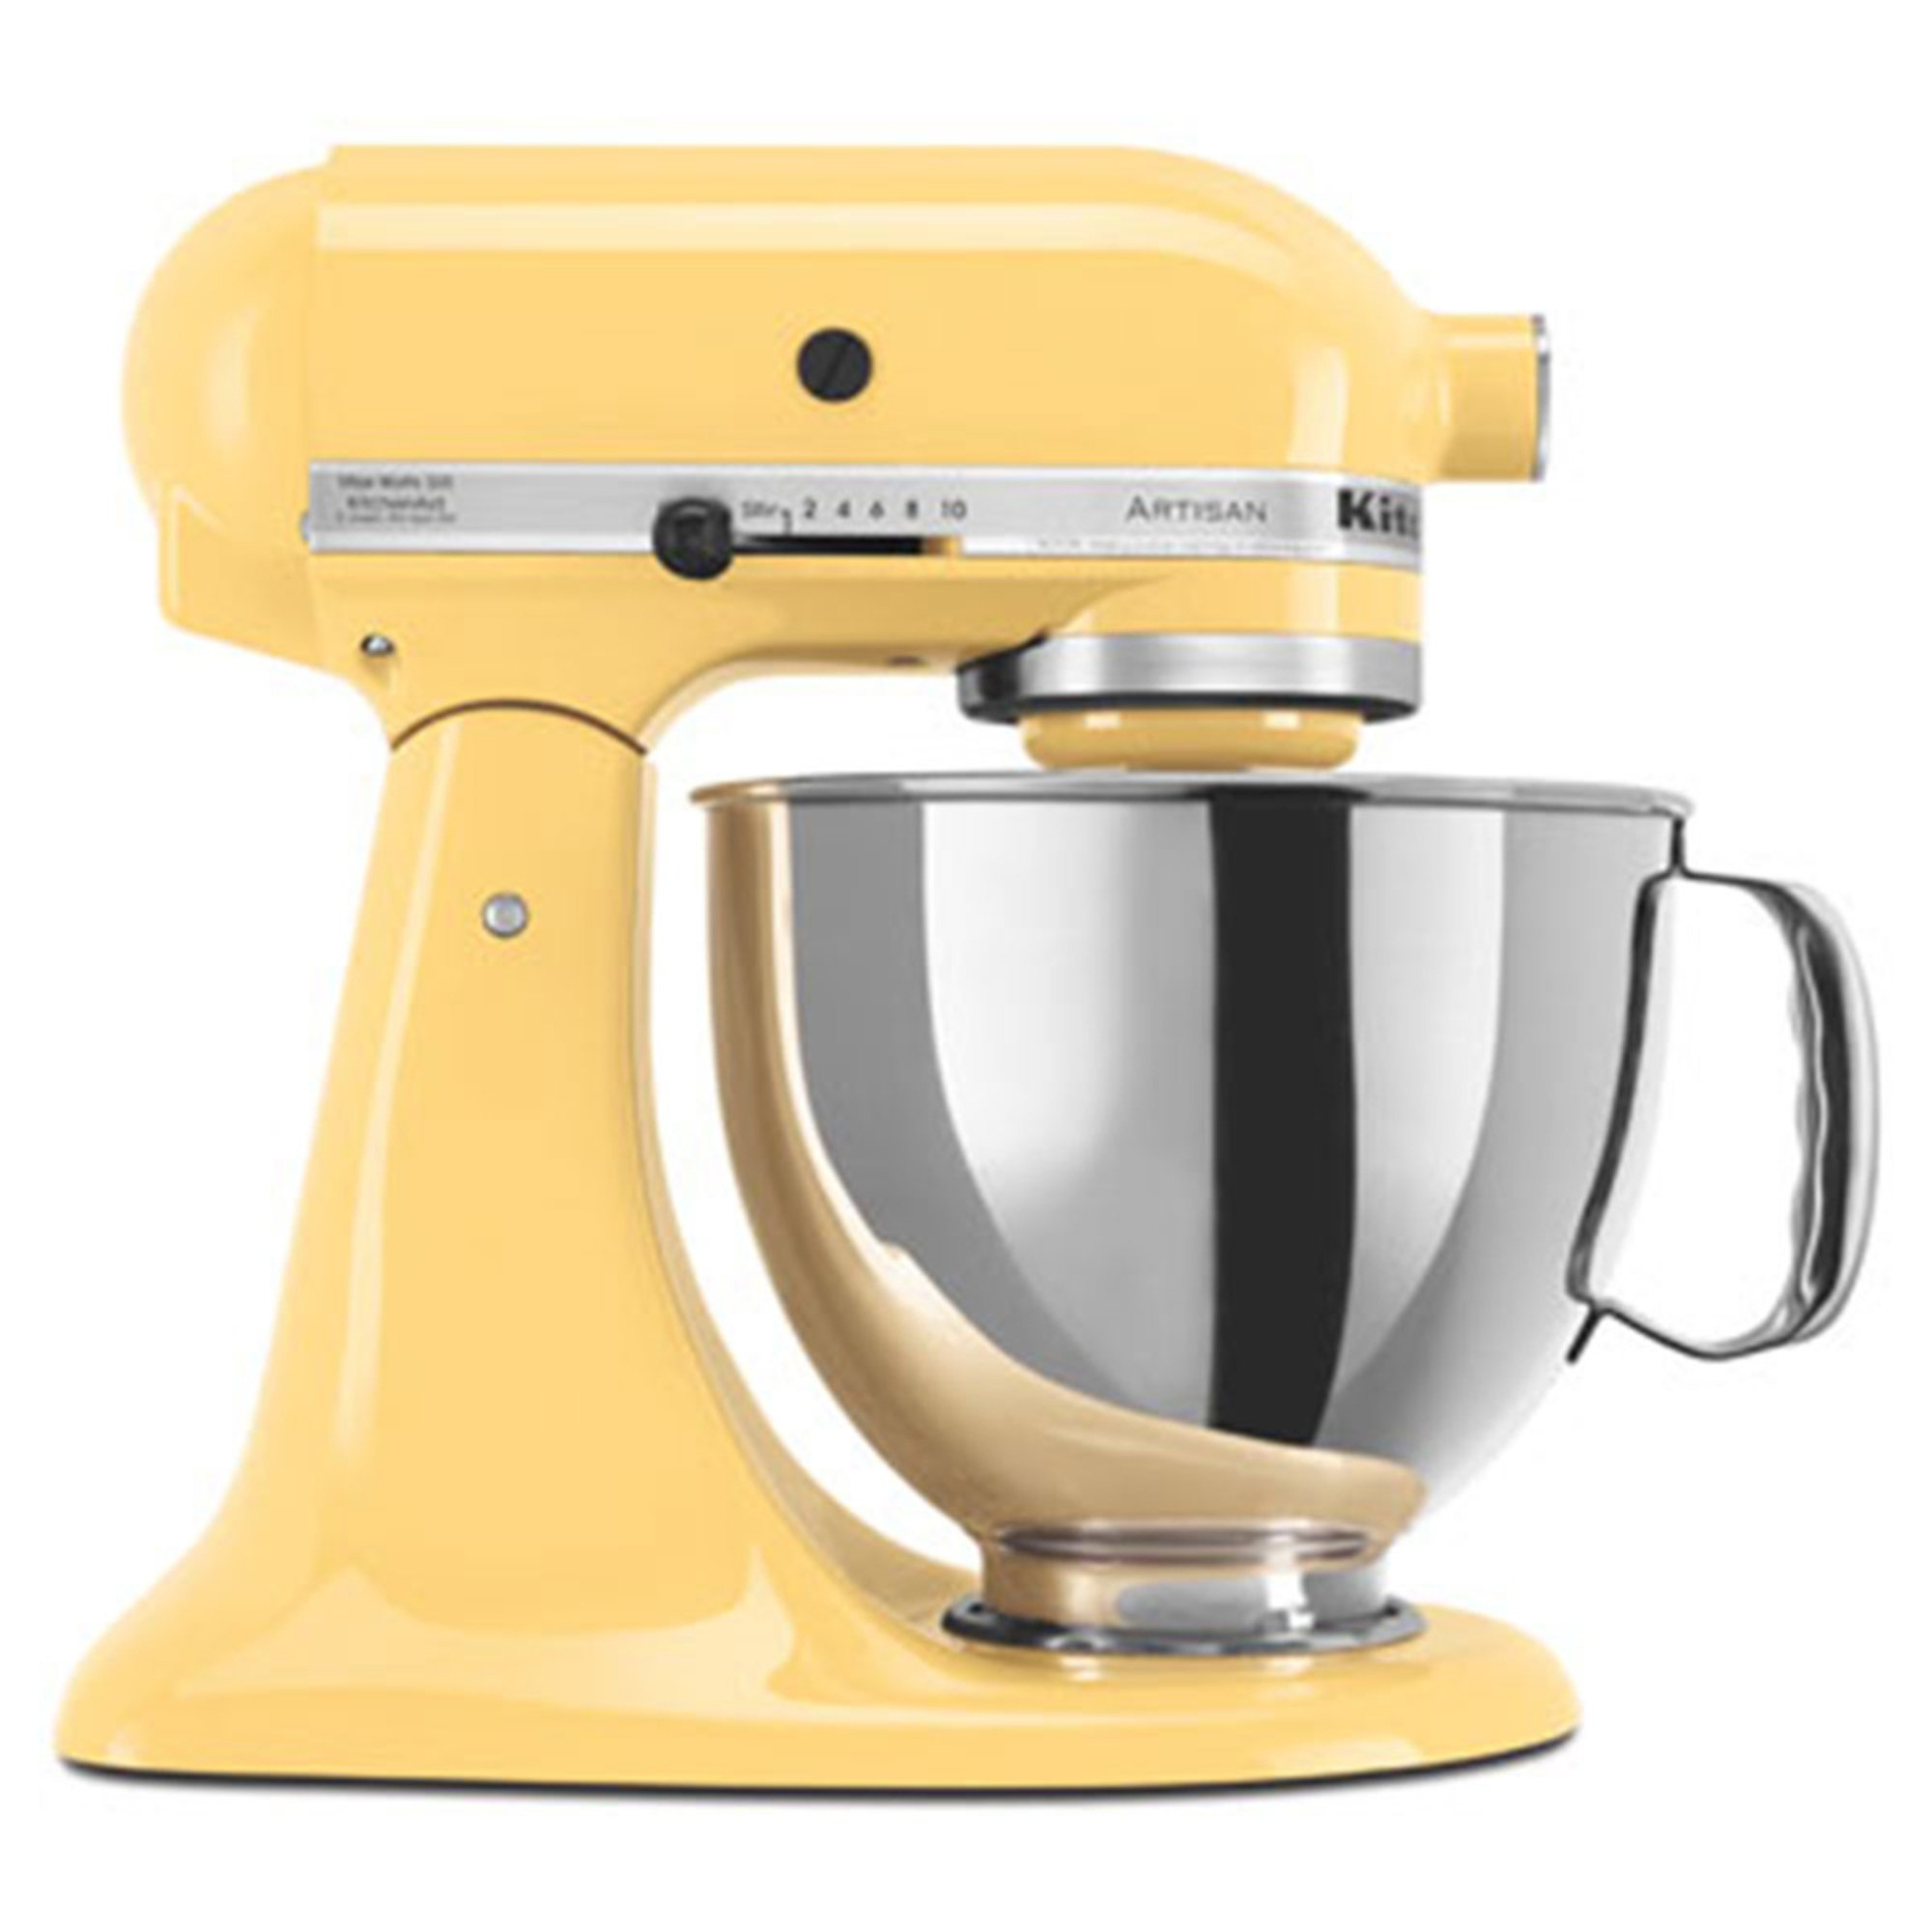 kitchenaid artisan series 5 quart tilt head stand mixer majestic yellow ksm150psmy stand. Black Bedroom Furniture Sets. Home Design Ideas